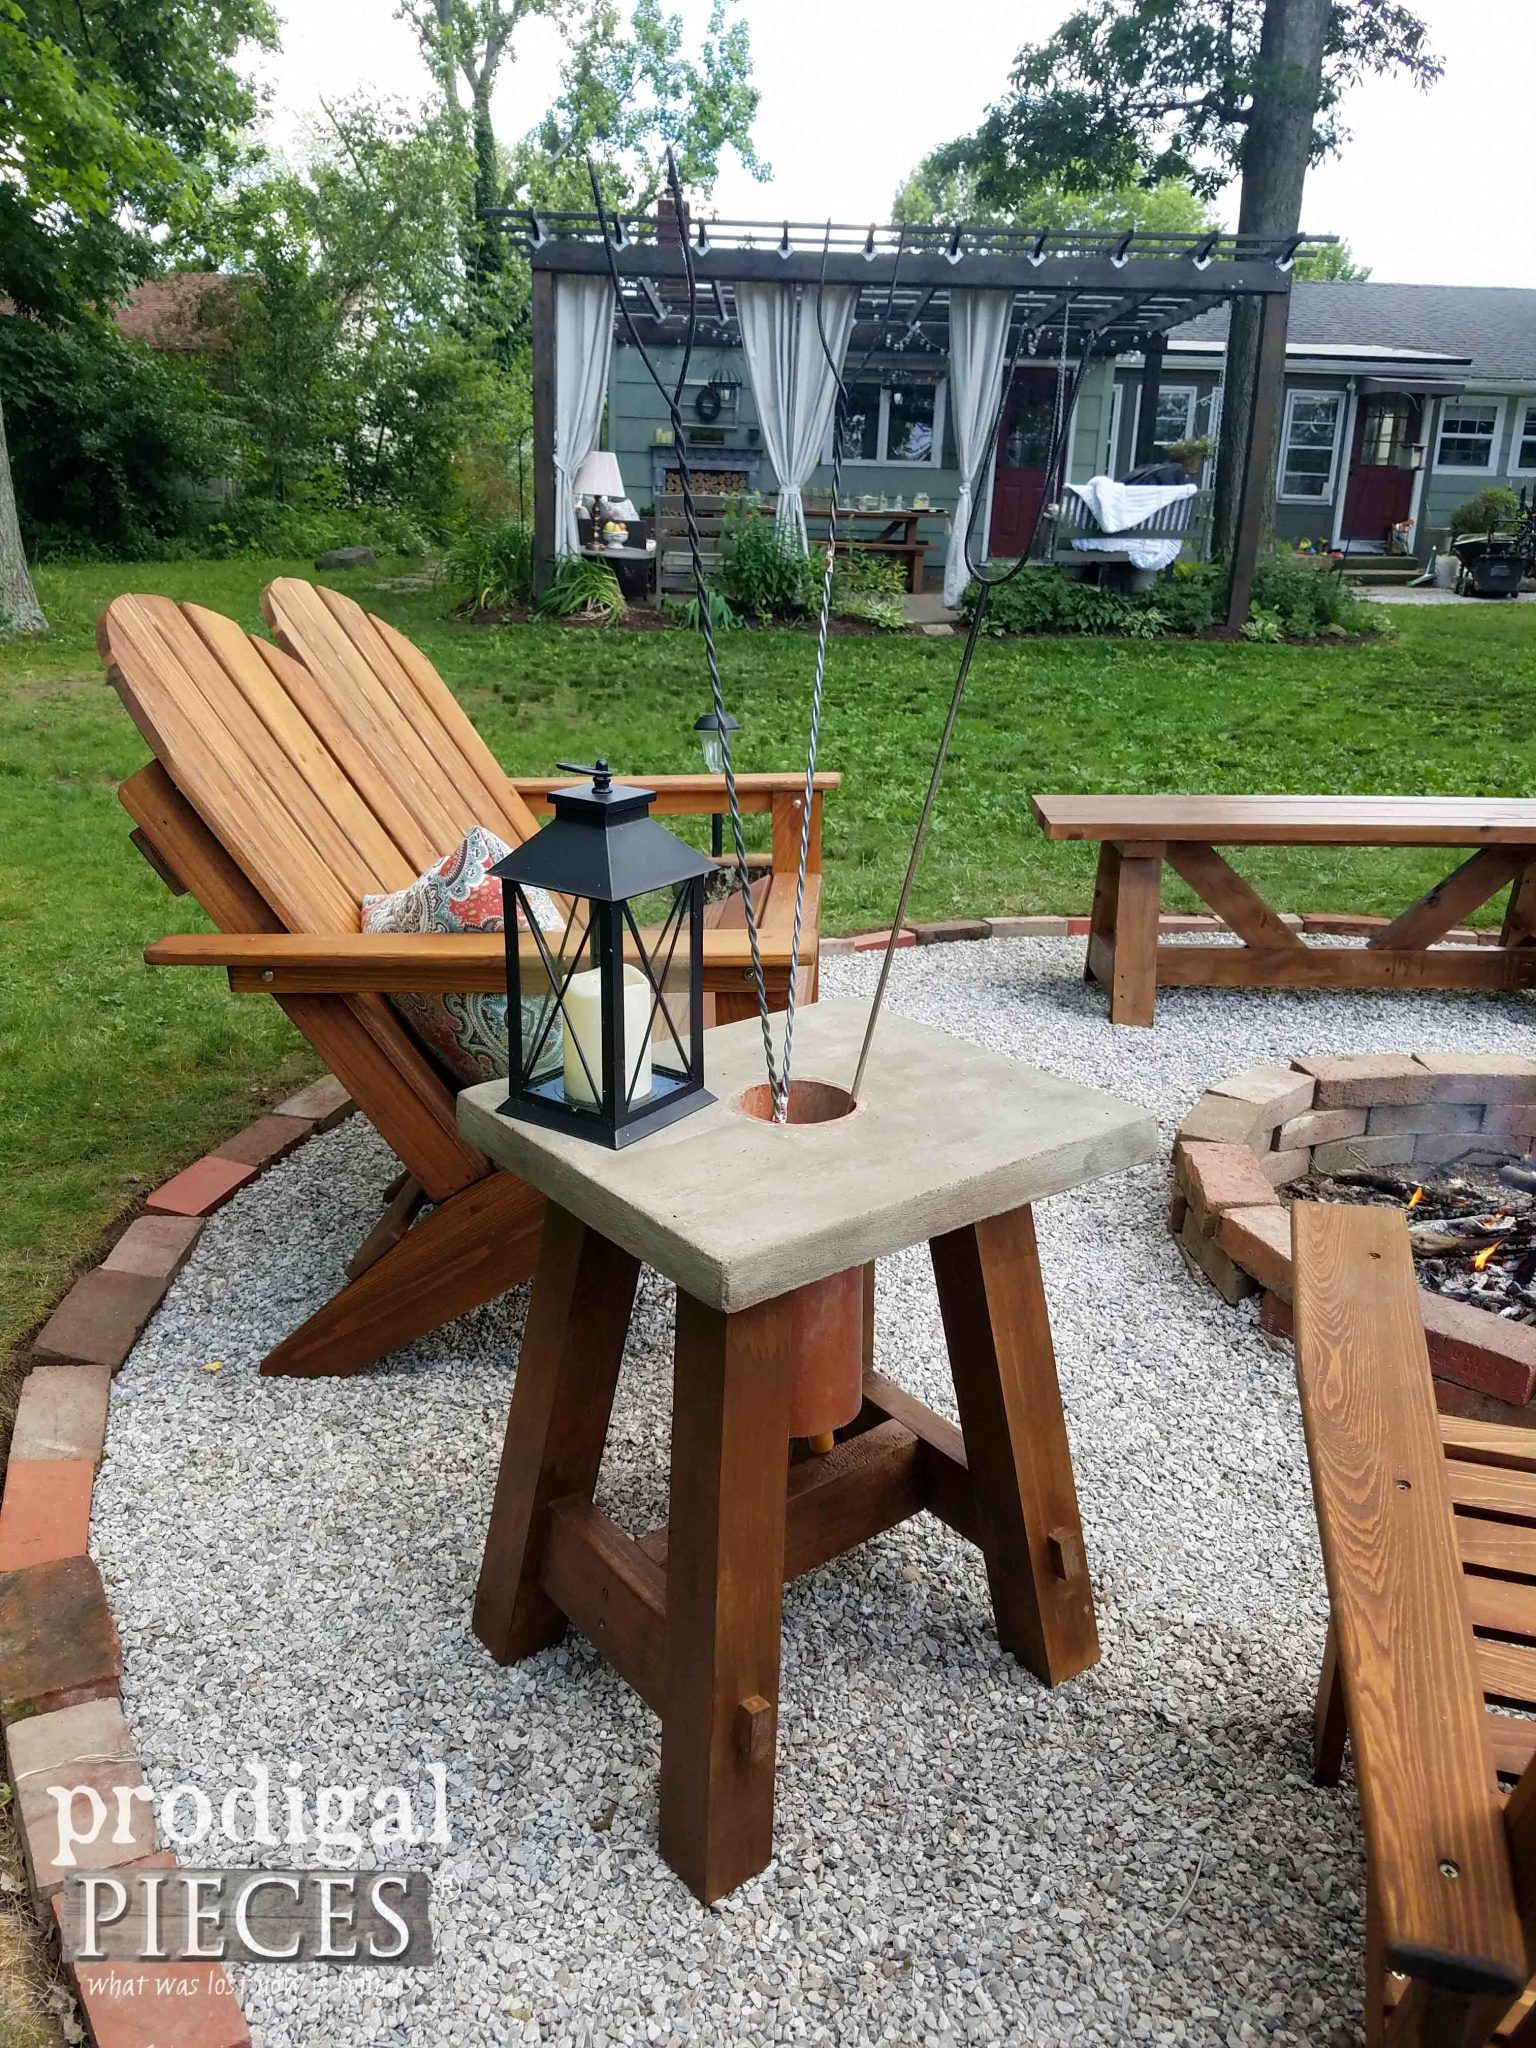 Concrete Fire Pit Table with Roasting Stick Holder by Prodigal Pieces | prodigalpieces.com